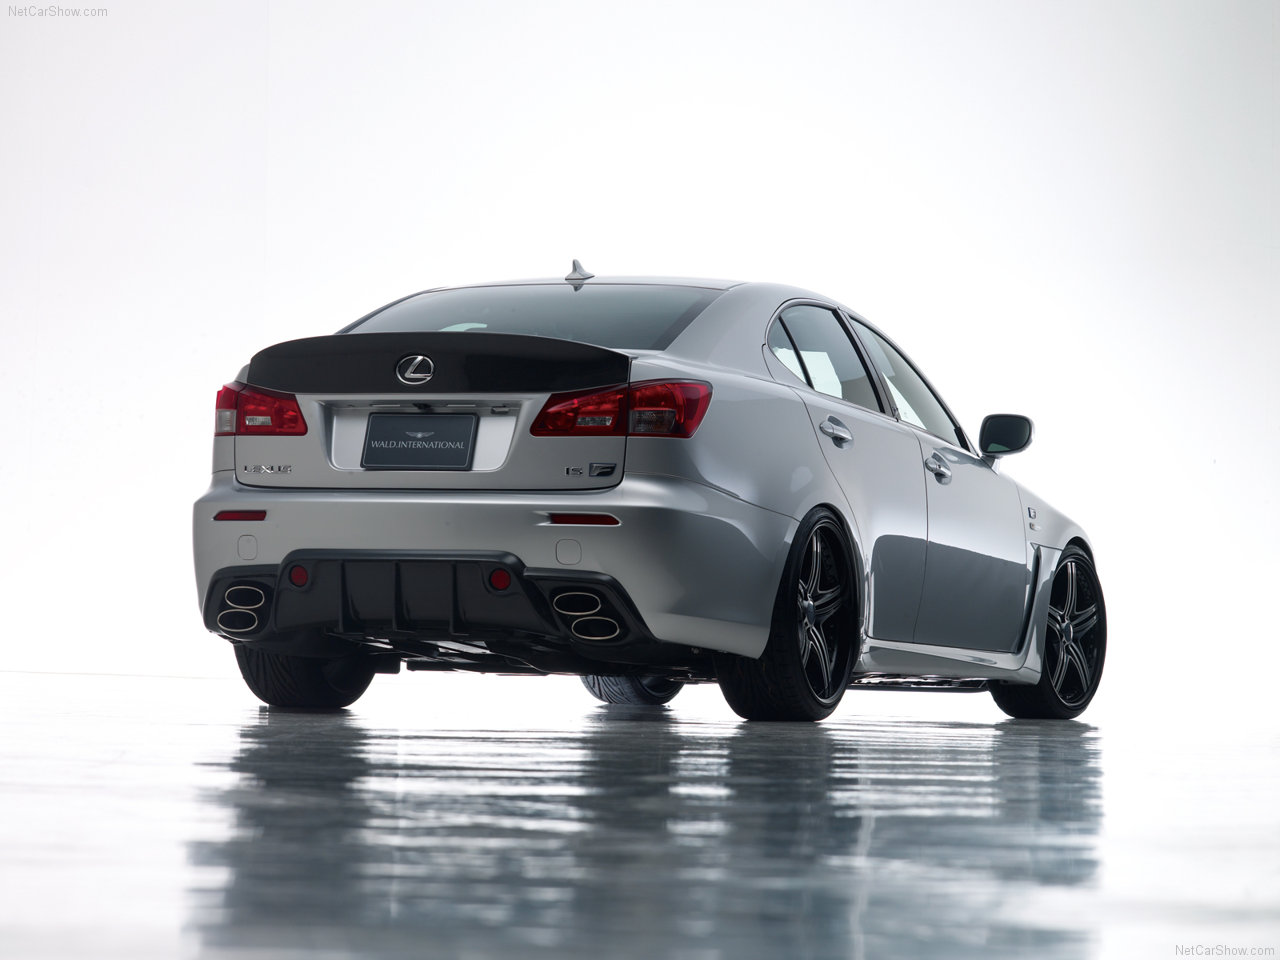 2009 Wald Lexus IS-F